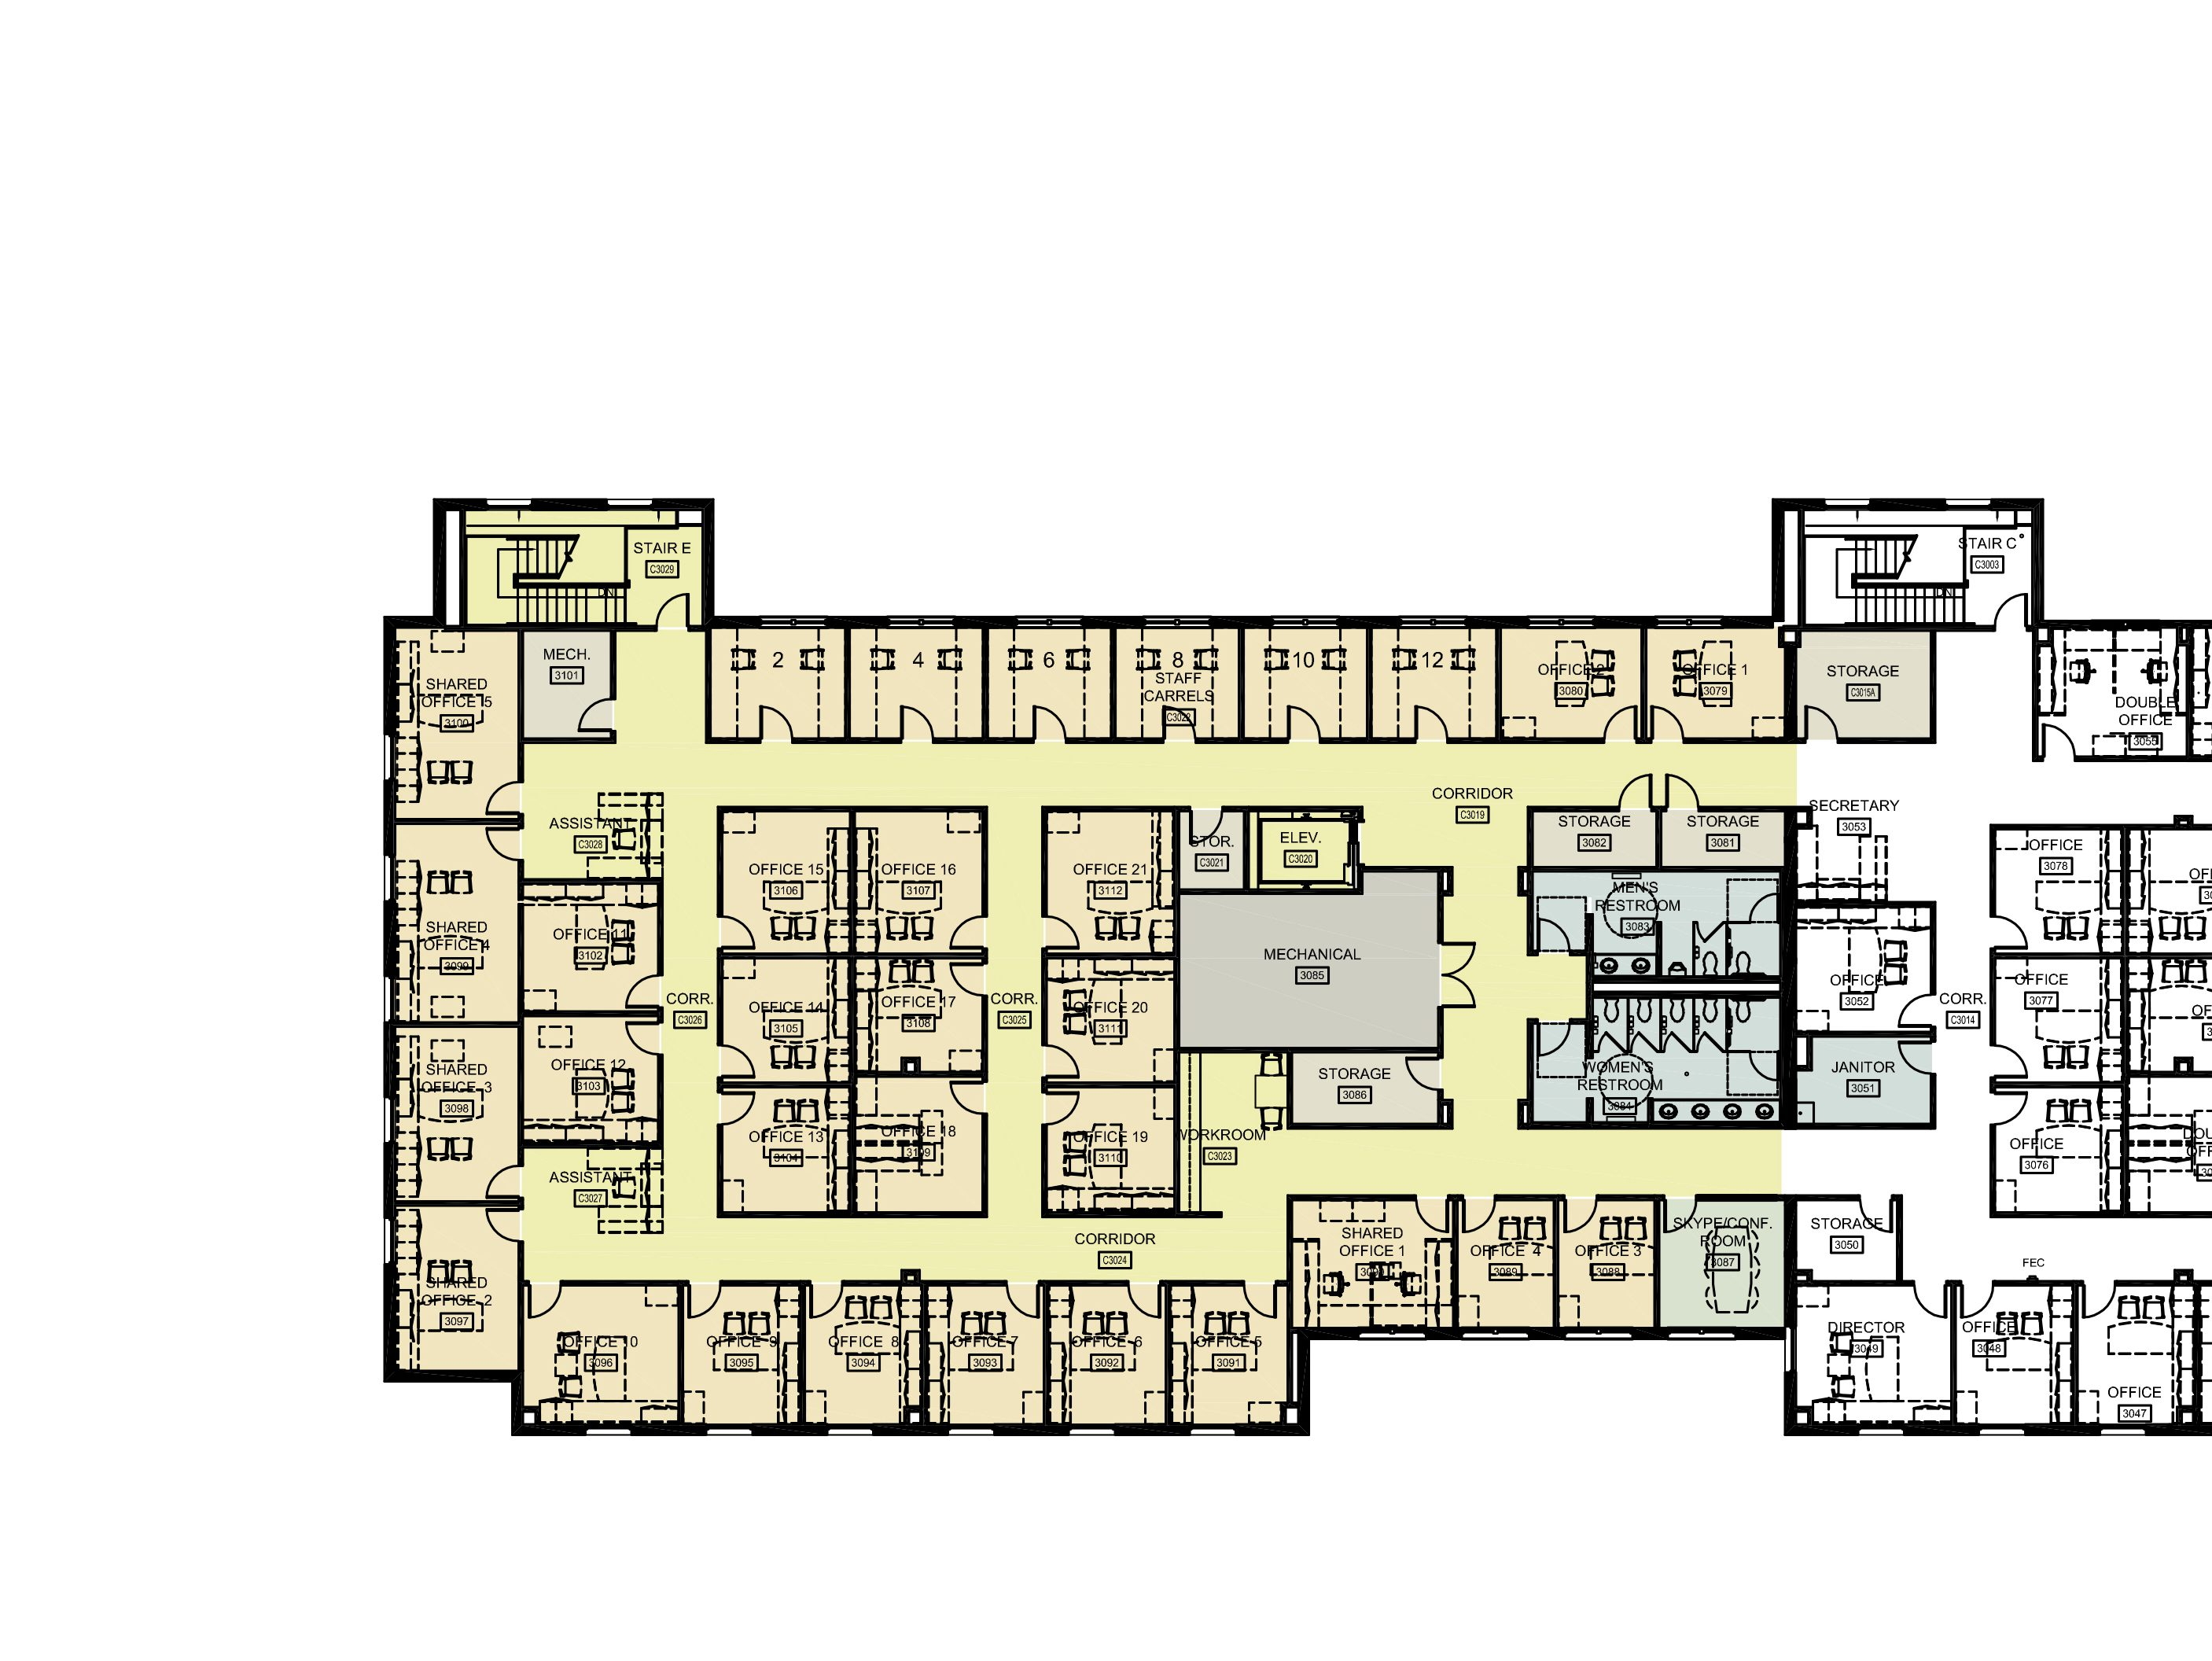 Link leads to large image version of third level Floor Plan. Contact: phone: 205.348.9876 or email: ahamlett@ua.edu for further information.